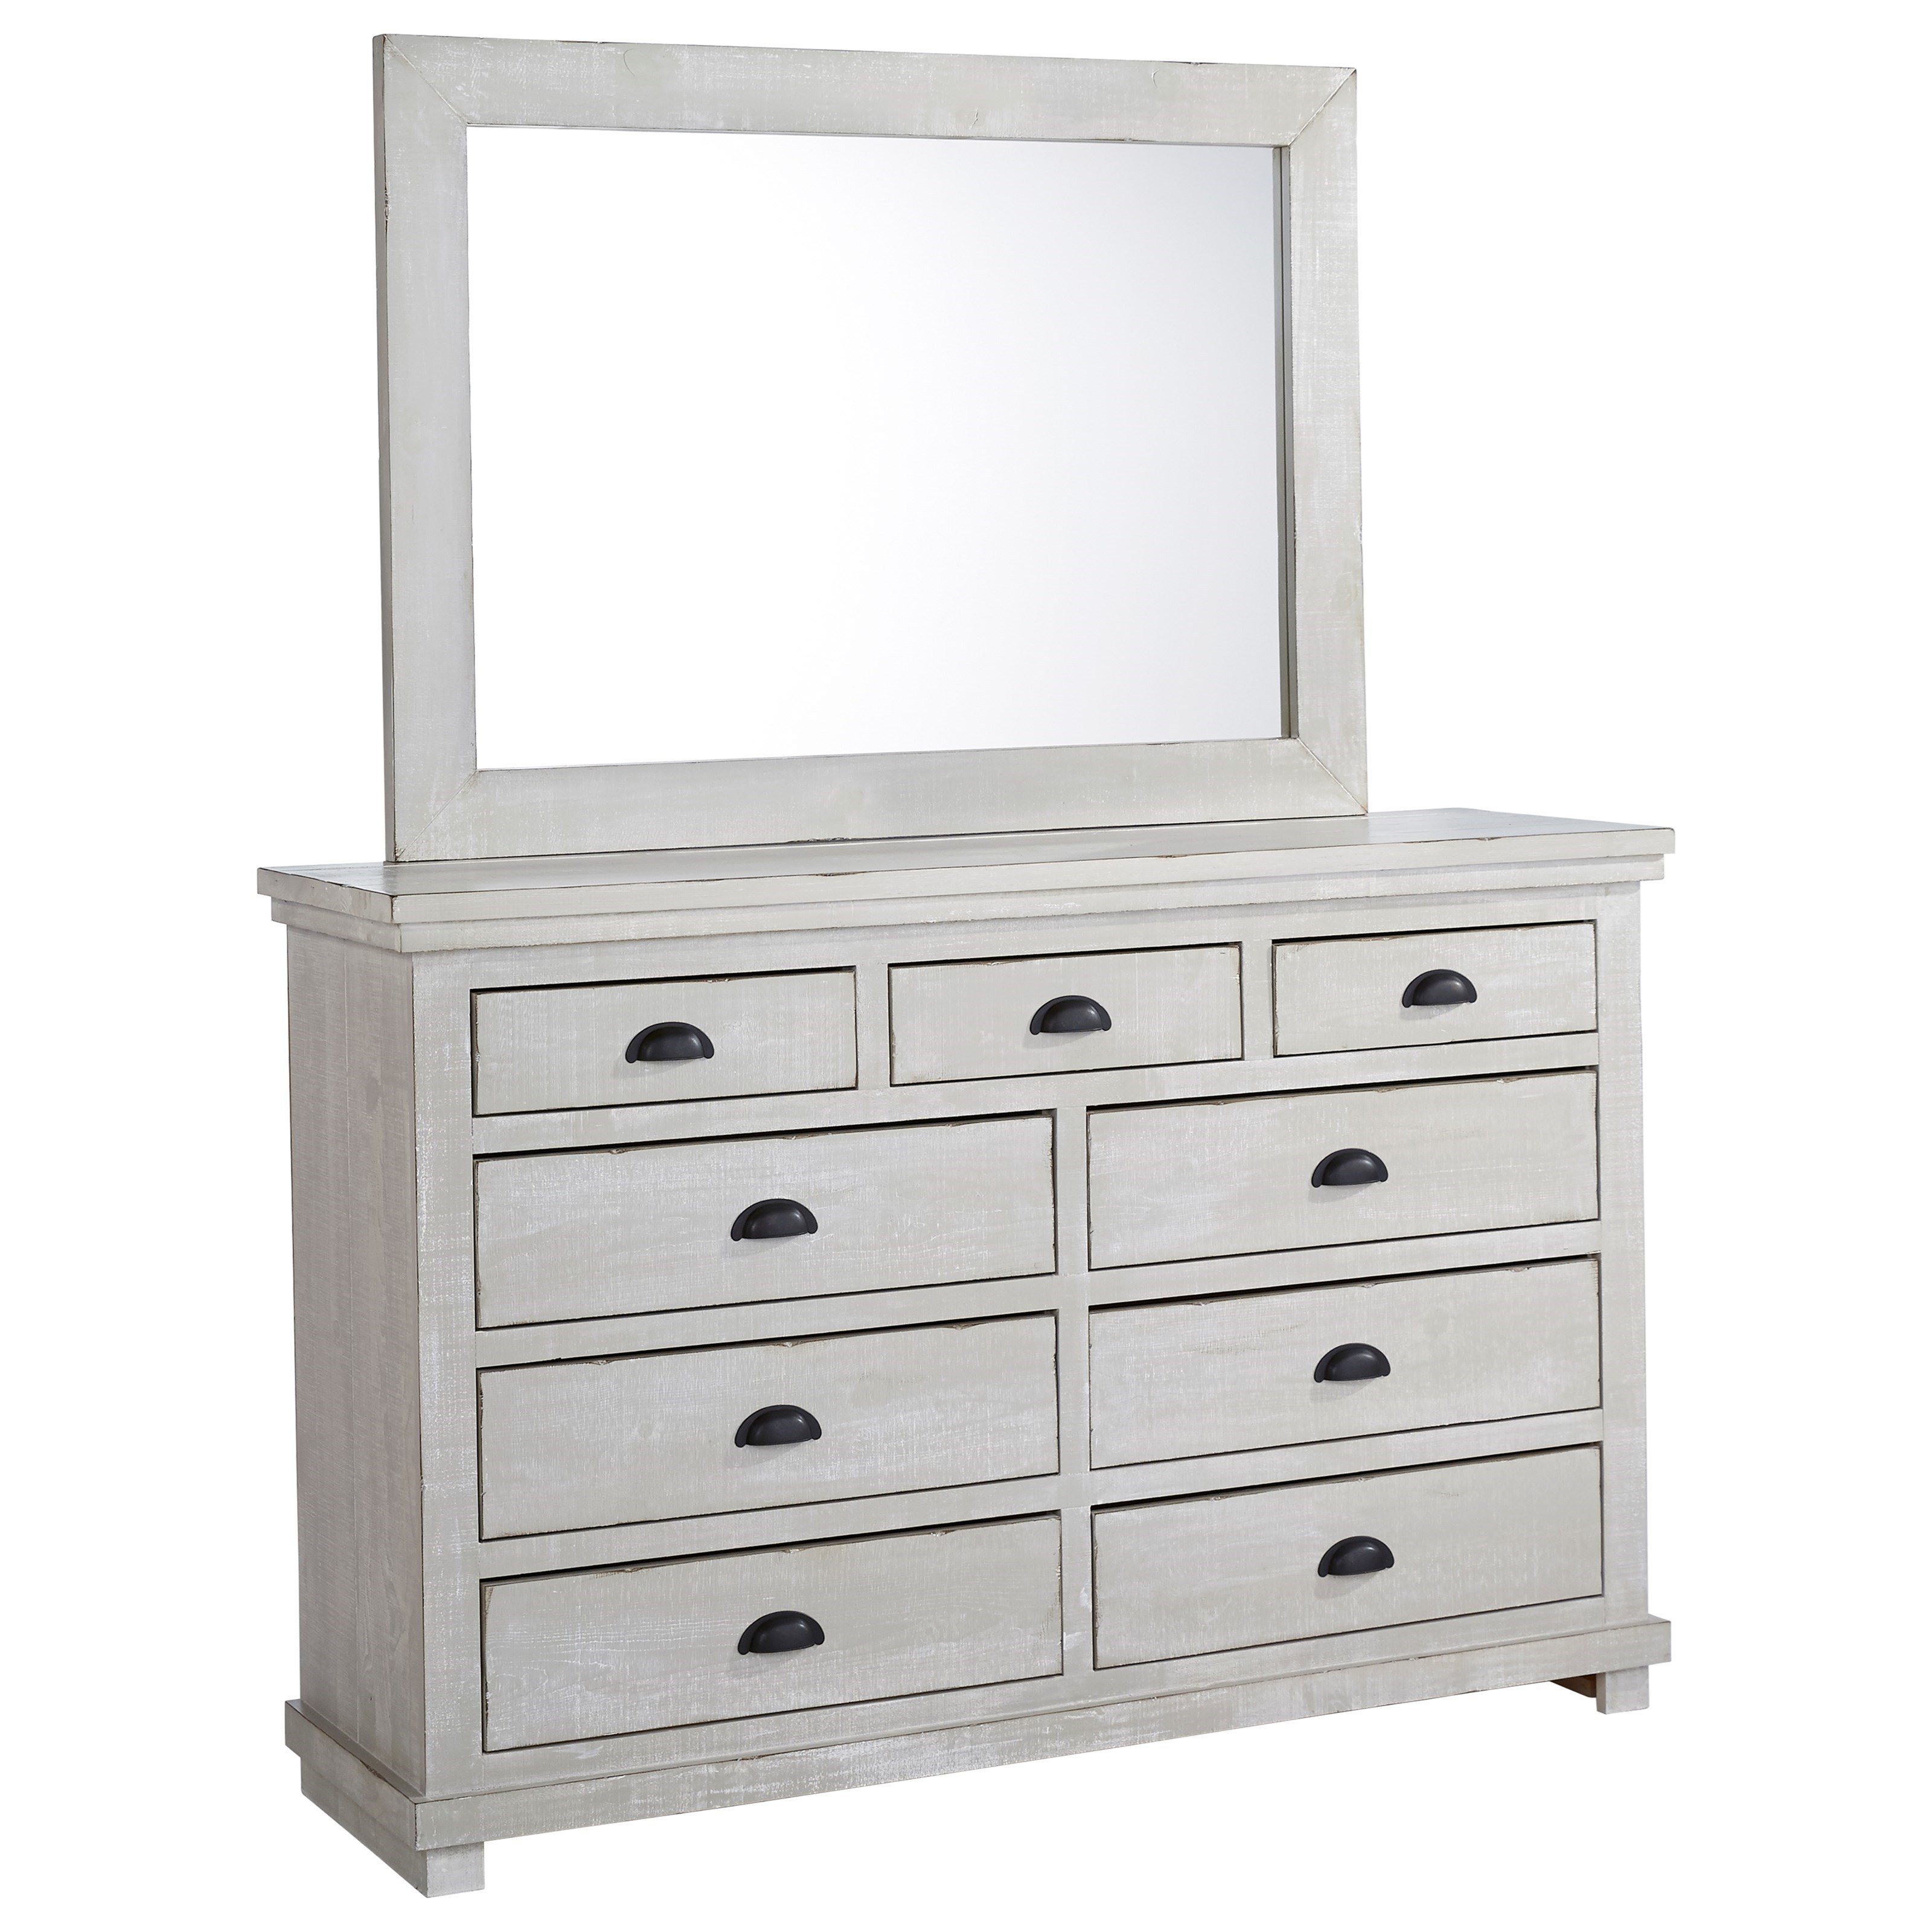 Willow Drawer Dresser & Mirror by Progressive Furniture at Catalog Outlet